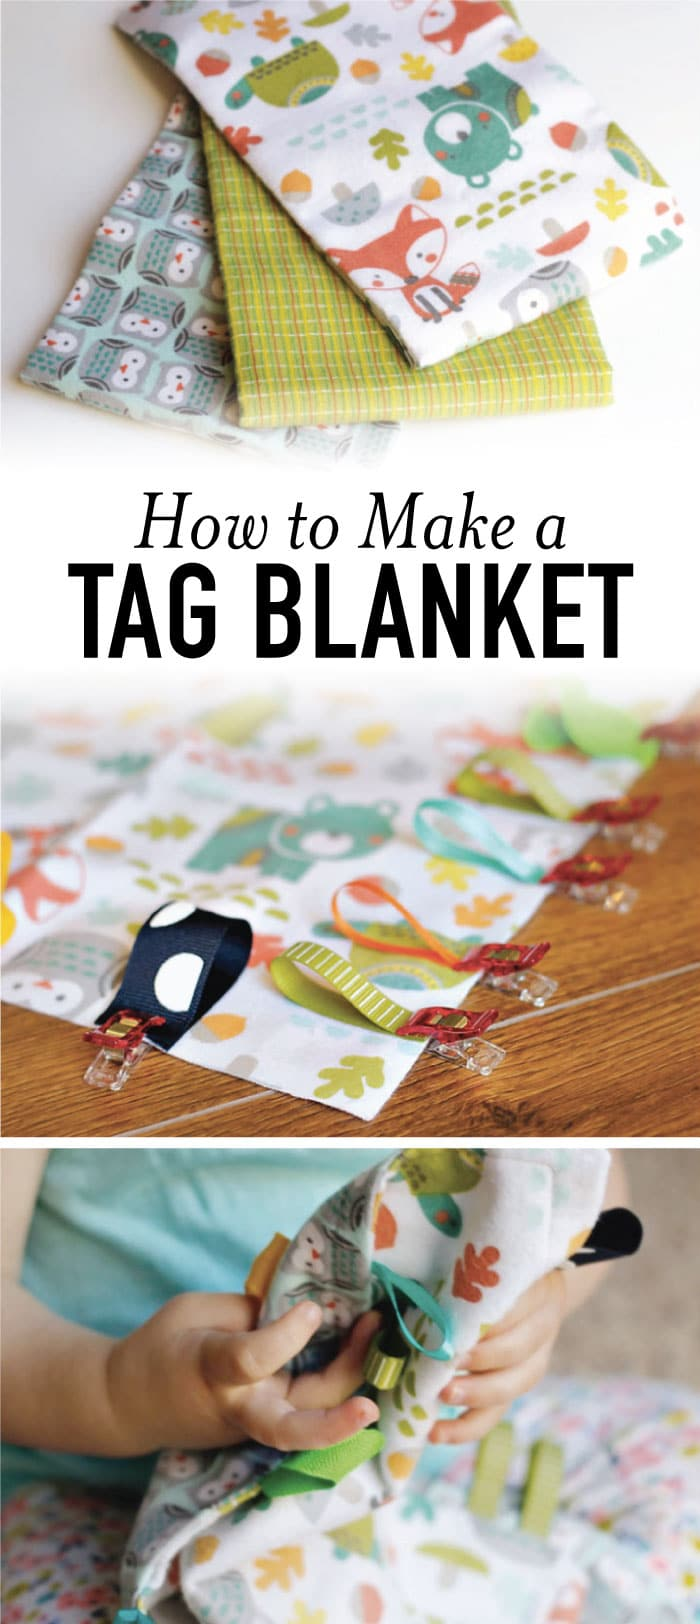 Learn how to make a tag blanket in less than 15 minutes. It's a perfect DIY baby shower gift or gift for a new mom! #tagblanket #easysewing #diy #sew #babygift #babyshowergift